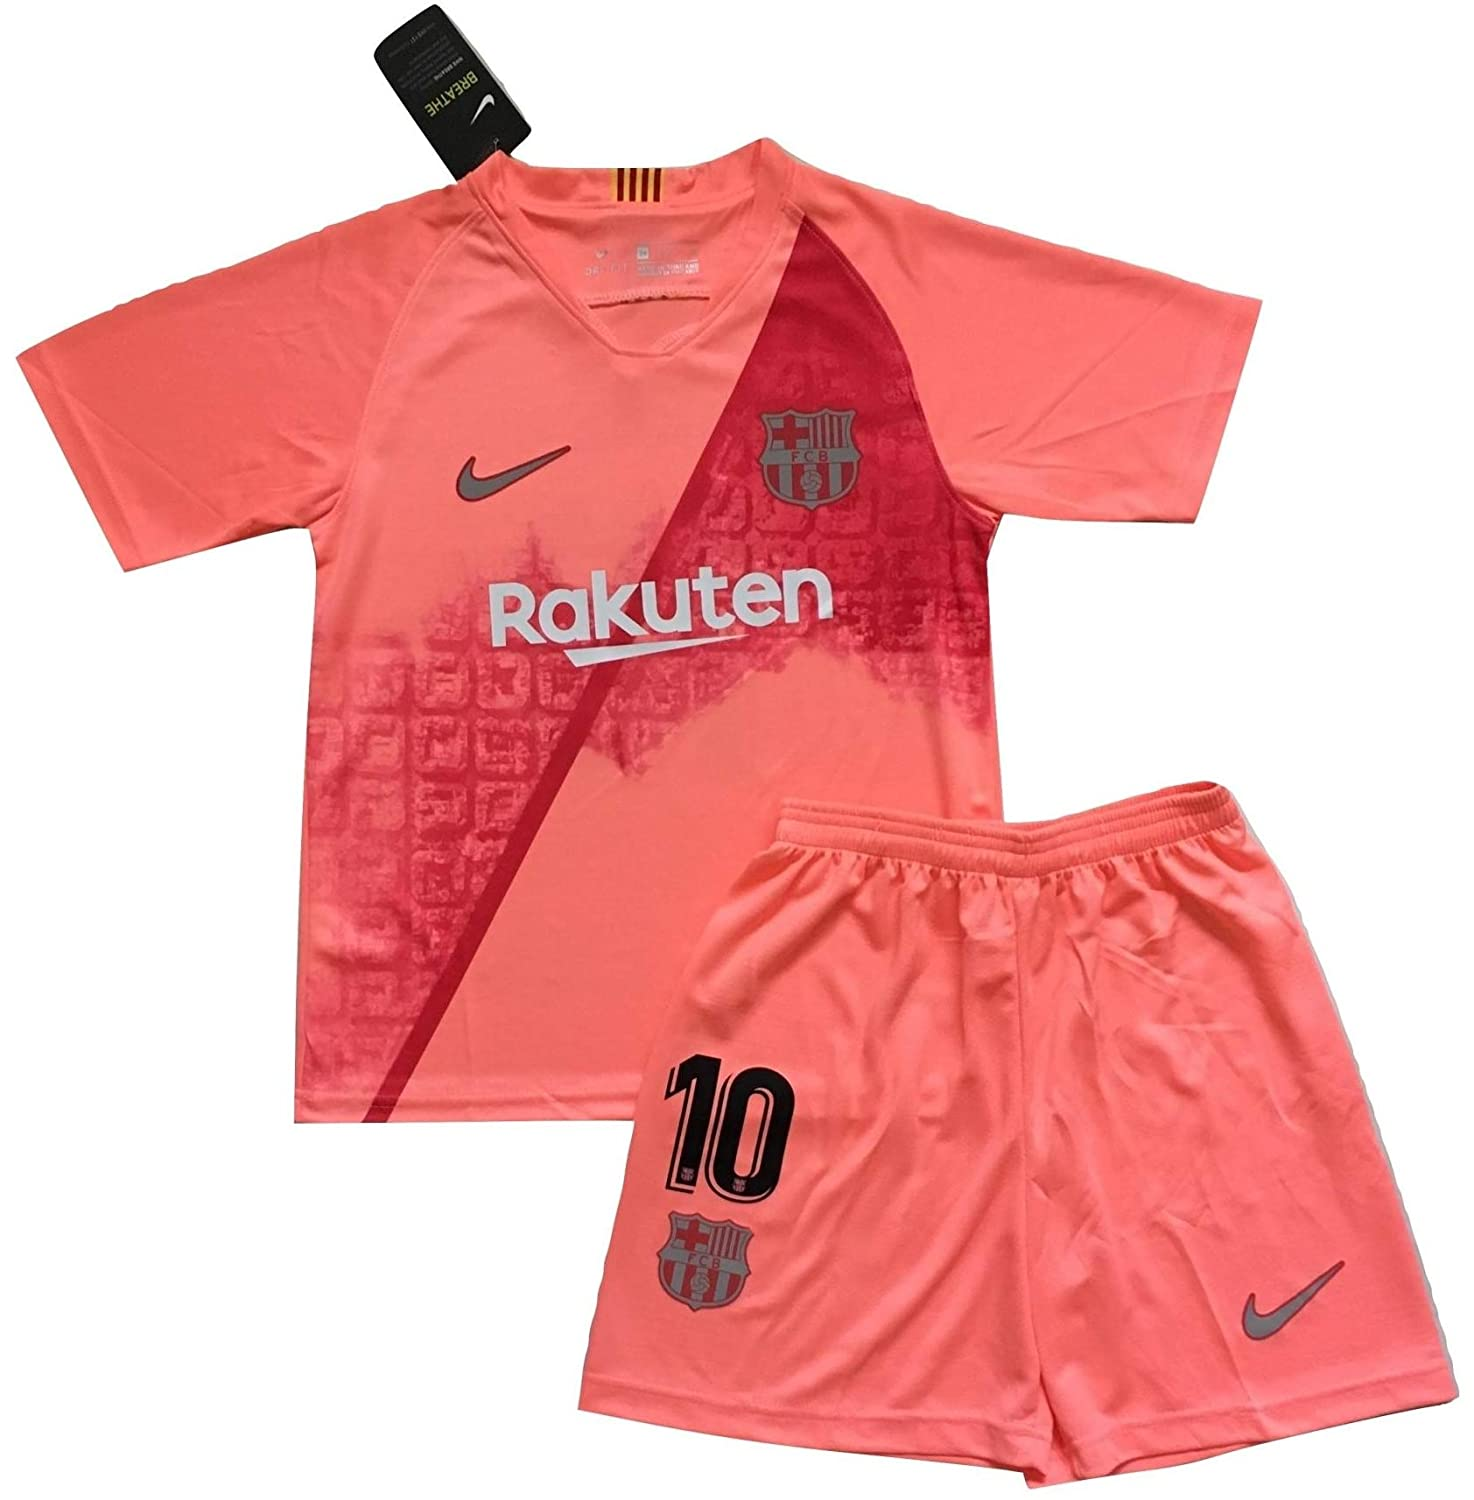 buy popular e65e2 93e52 Messi #10 FC Barcelona 2018/2019 3rd Champions League Jersey and Shorts for  Kids/Youths